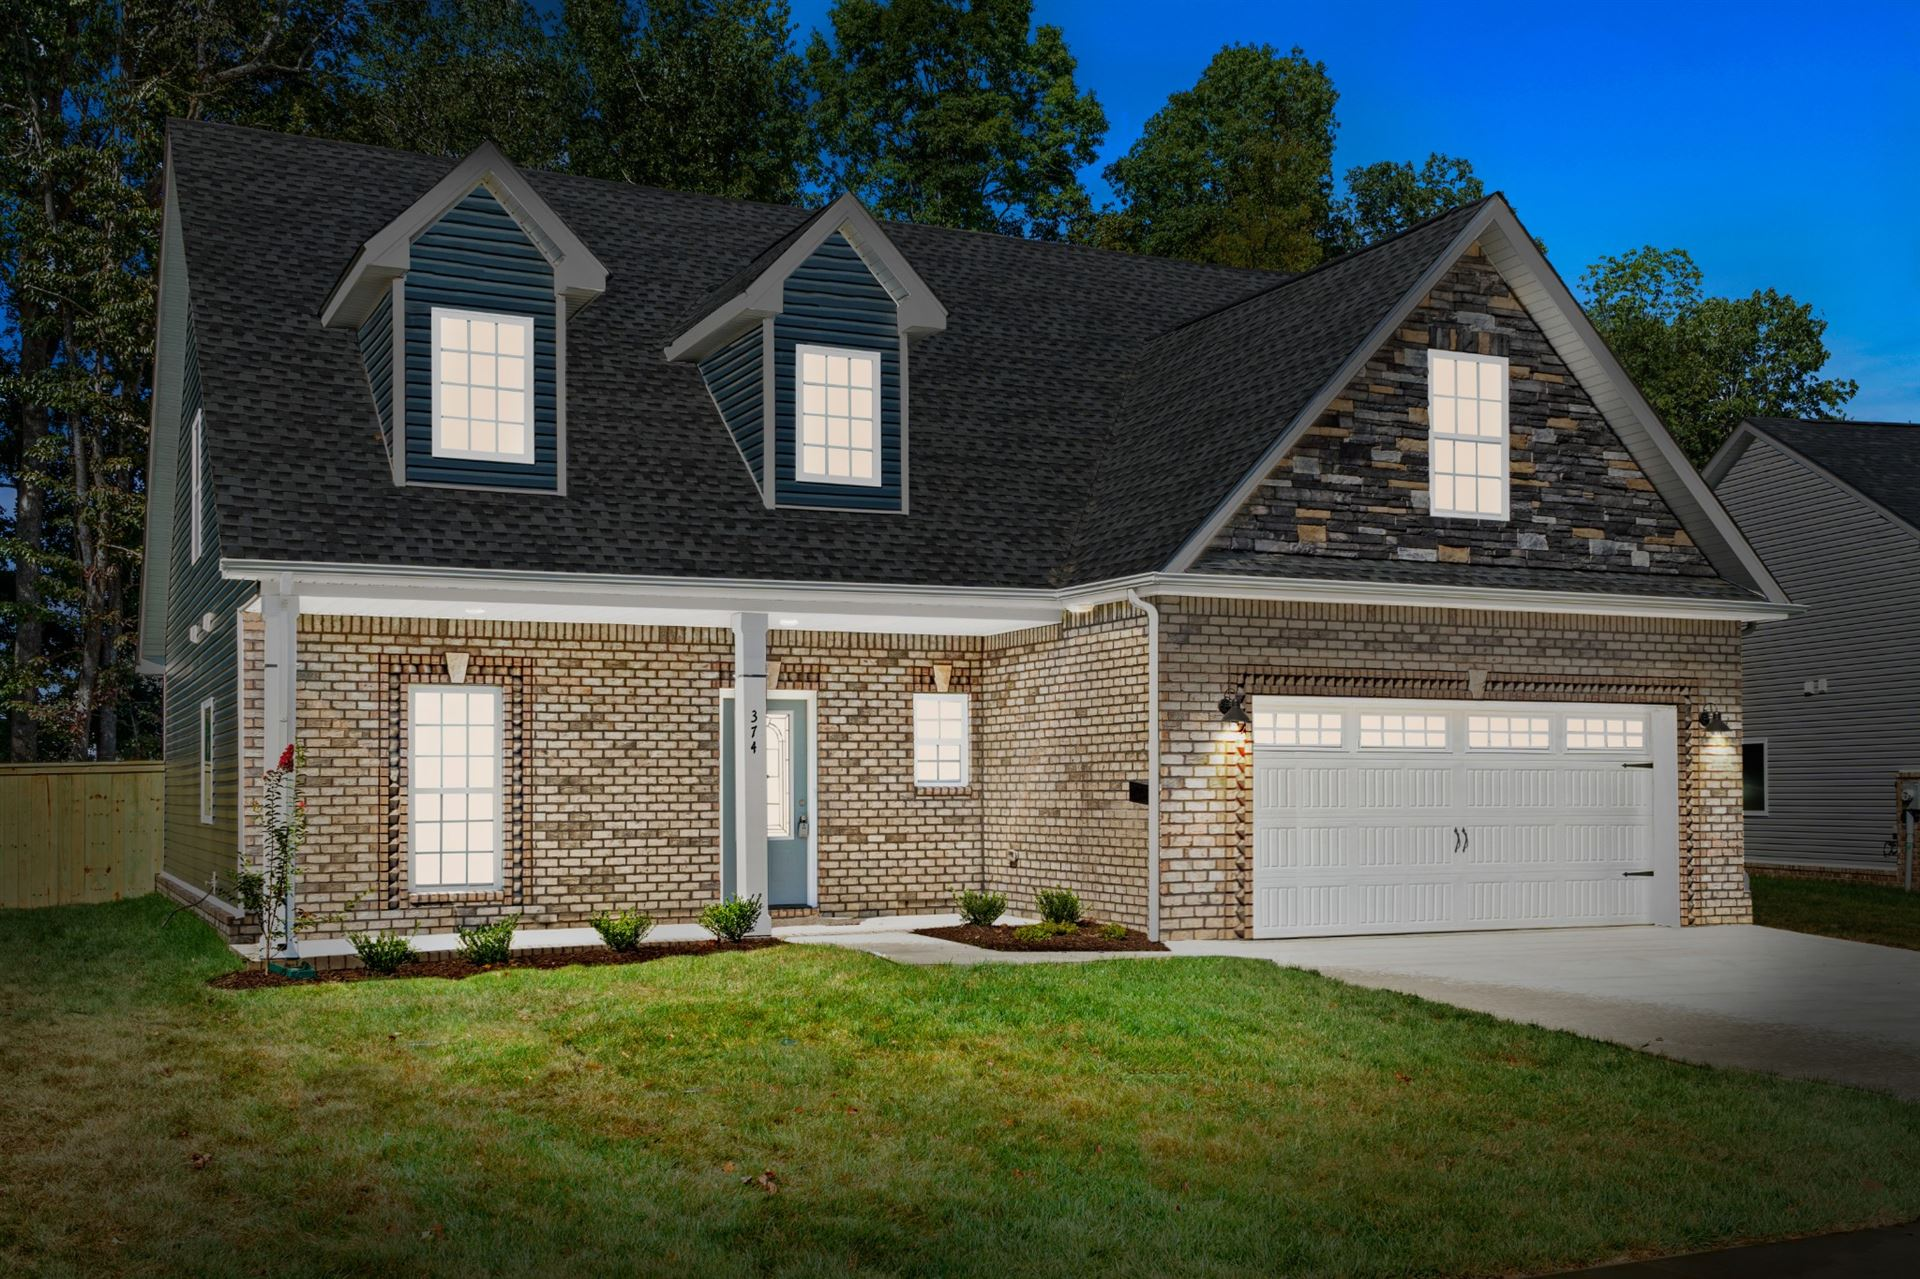 688 Farmington, Clarksville, TN 37043 - MLS#: 2161434